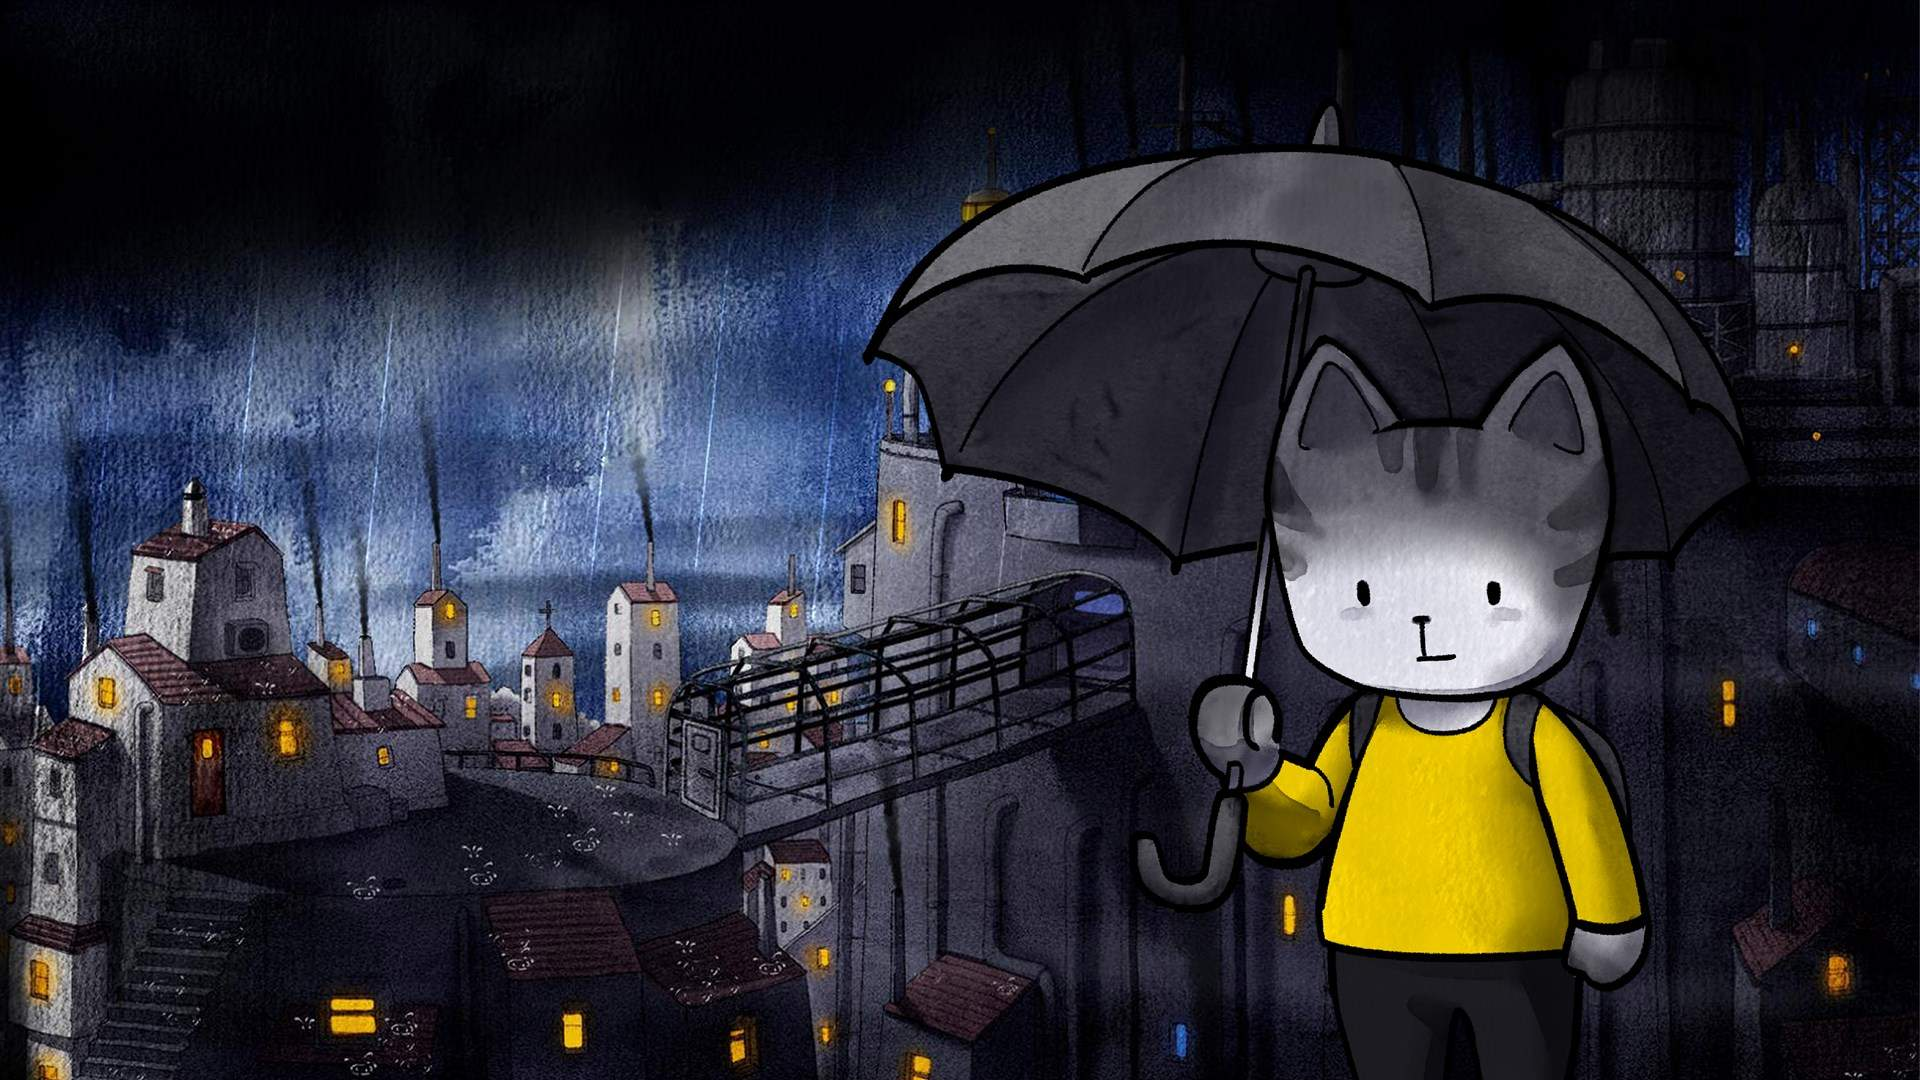 RainCity Is Now Available For Digital Pre-order And Pre-download On Xbox One And Xbox Series X|S 1